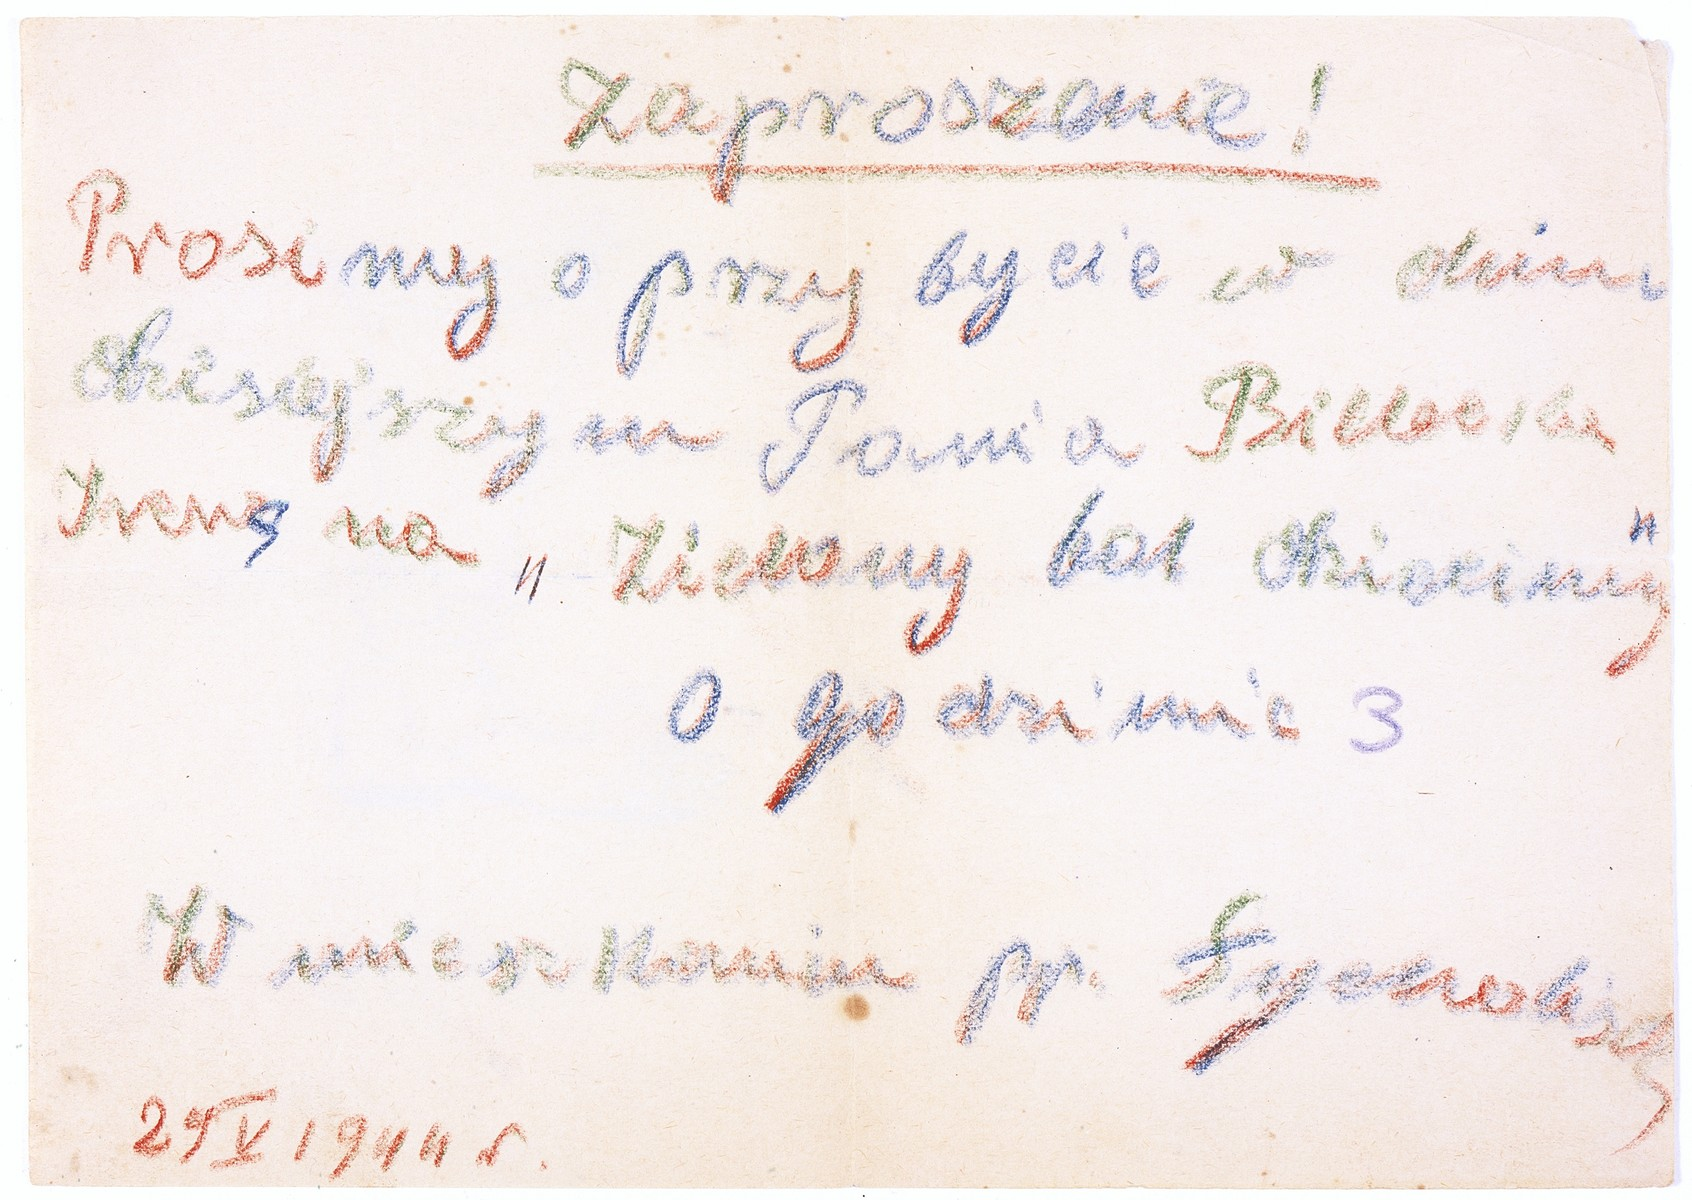 Invitation to a children's ball written in color pencil.  The ball was organized by Irena Schwarz, a Jewish child living in hiding in Skarzysko Kamienna, Poland.  It took place at the apartment of her rescuere, Janina Sycz.